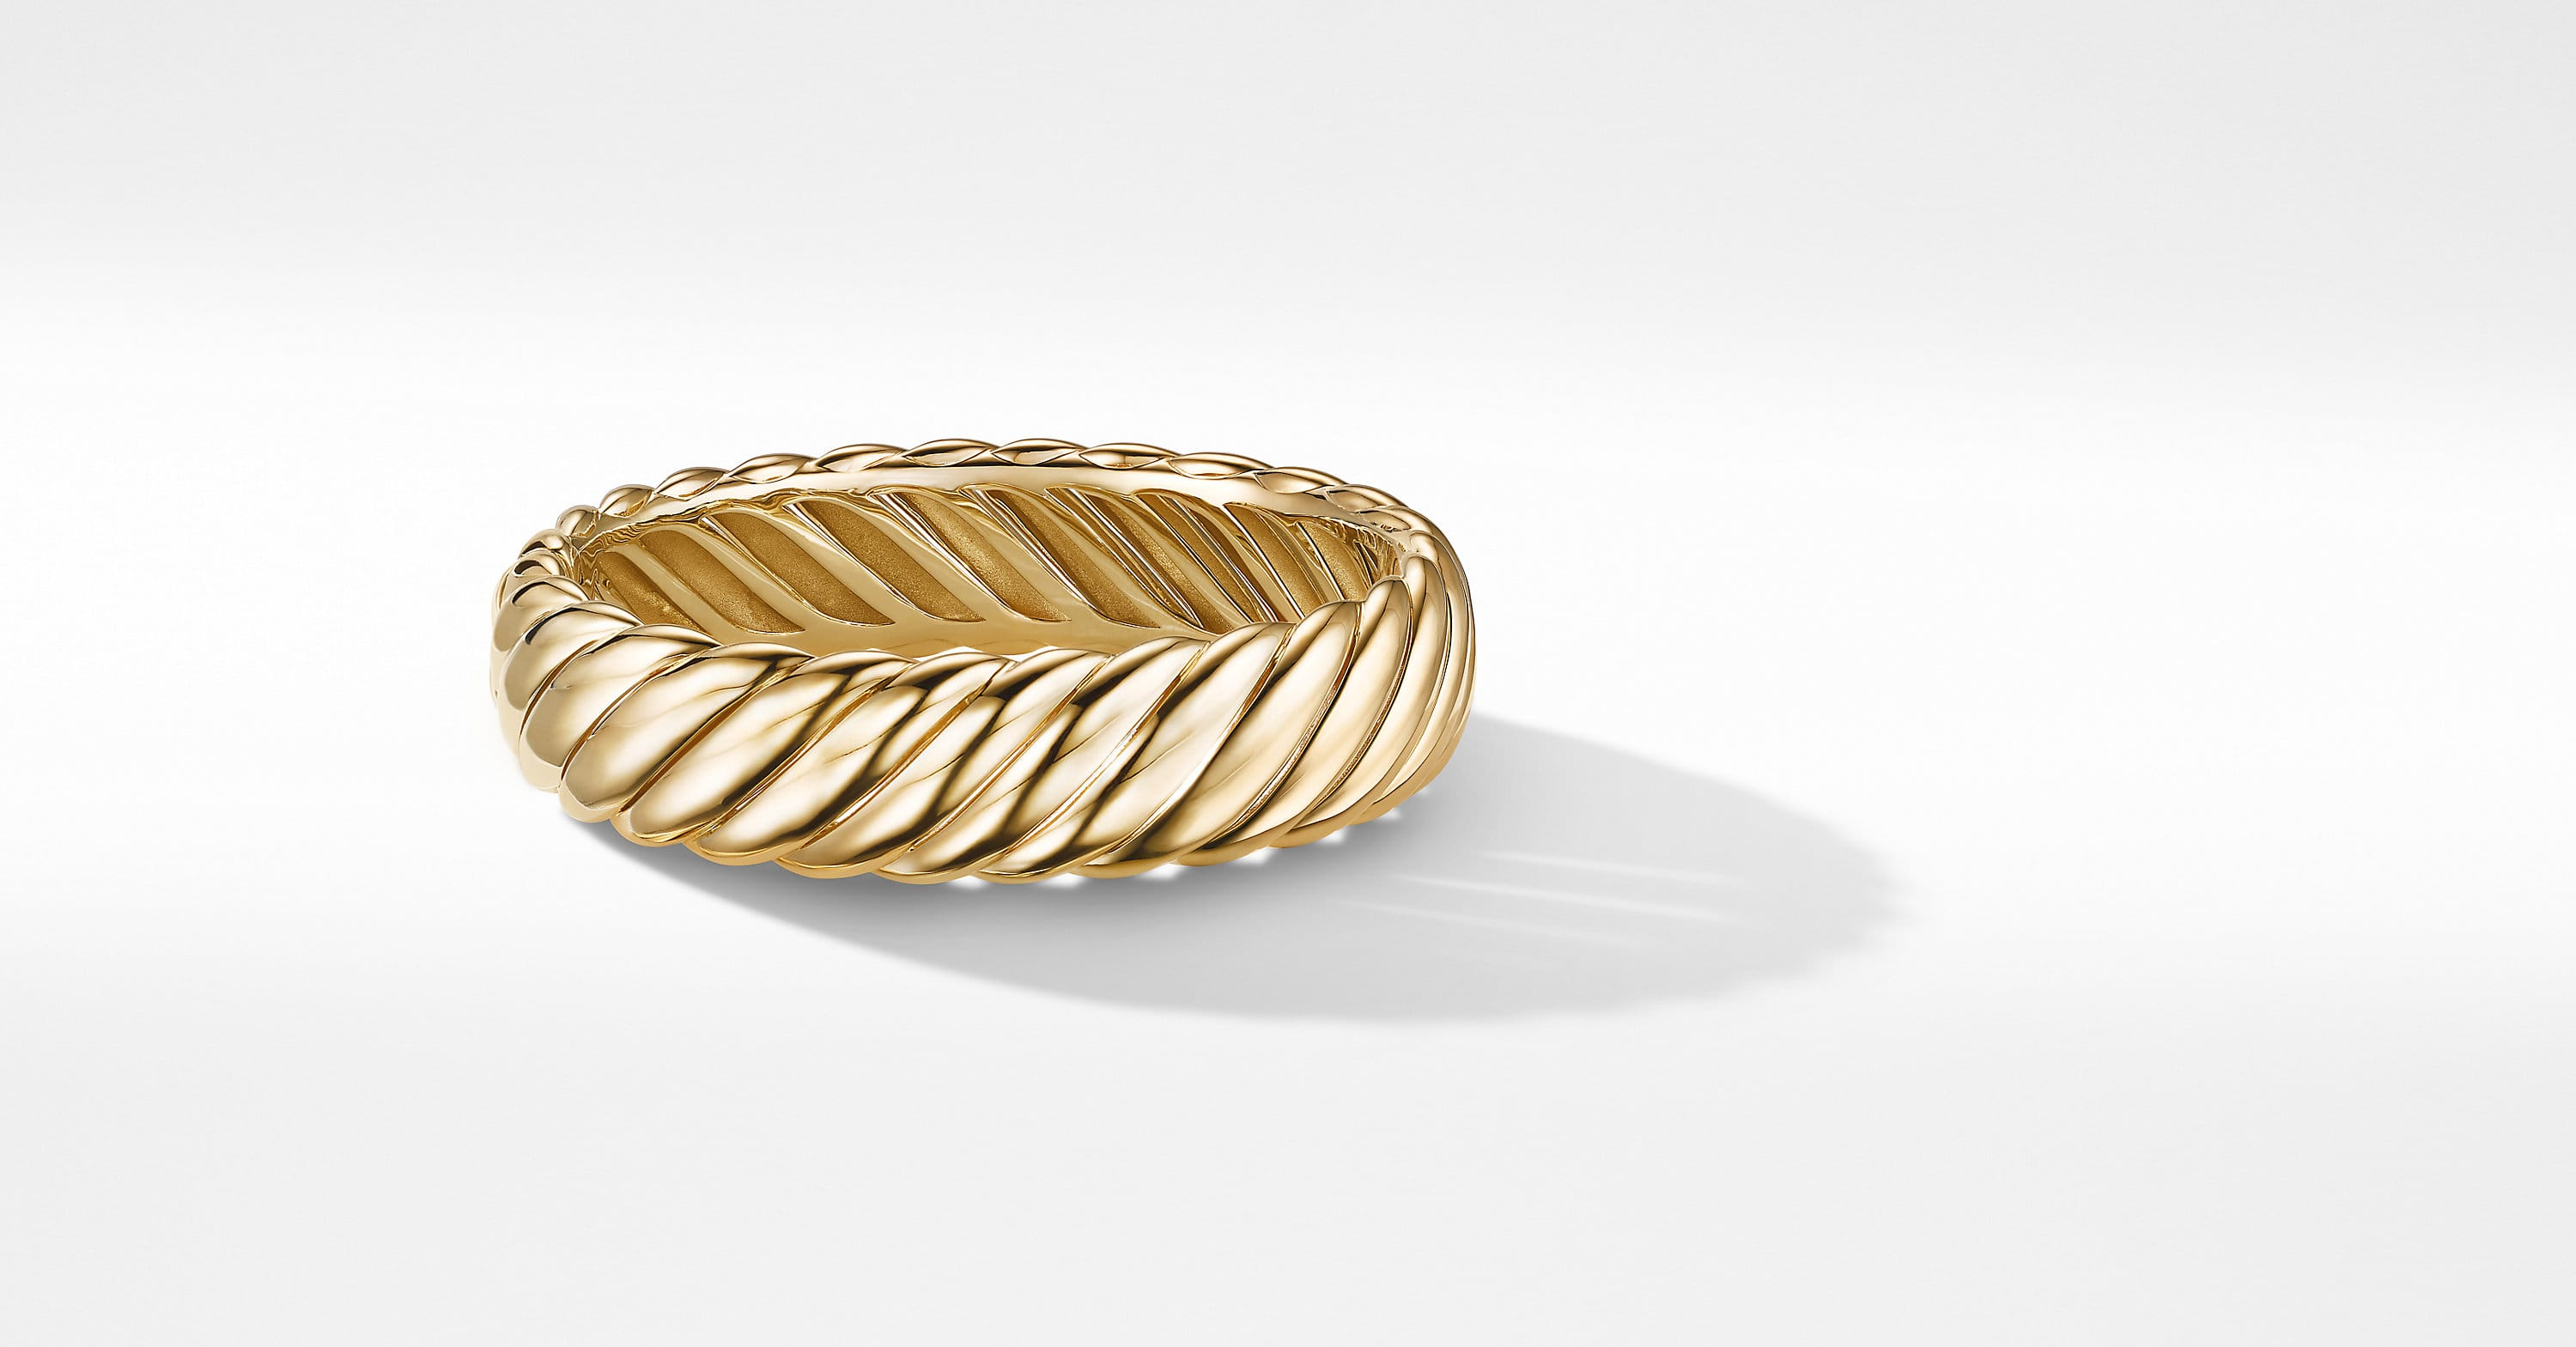 Sculpted Cable Bracelet in 18K Yellow Gold, 17mm